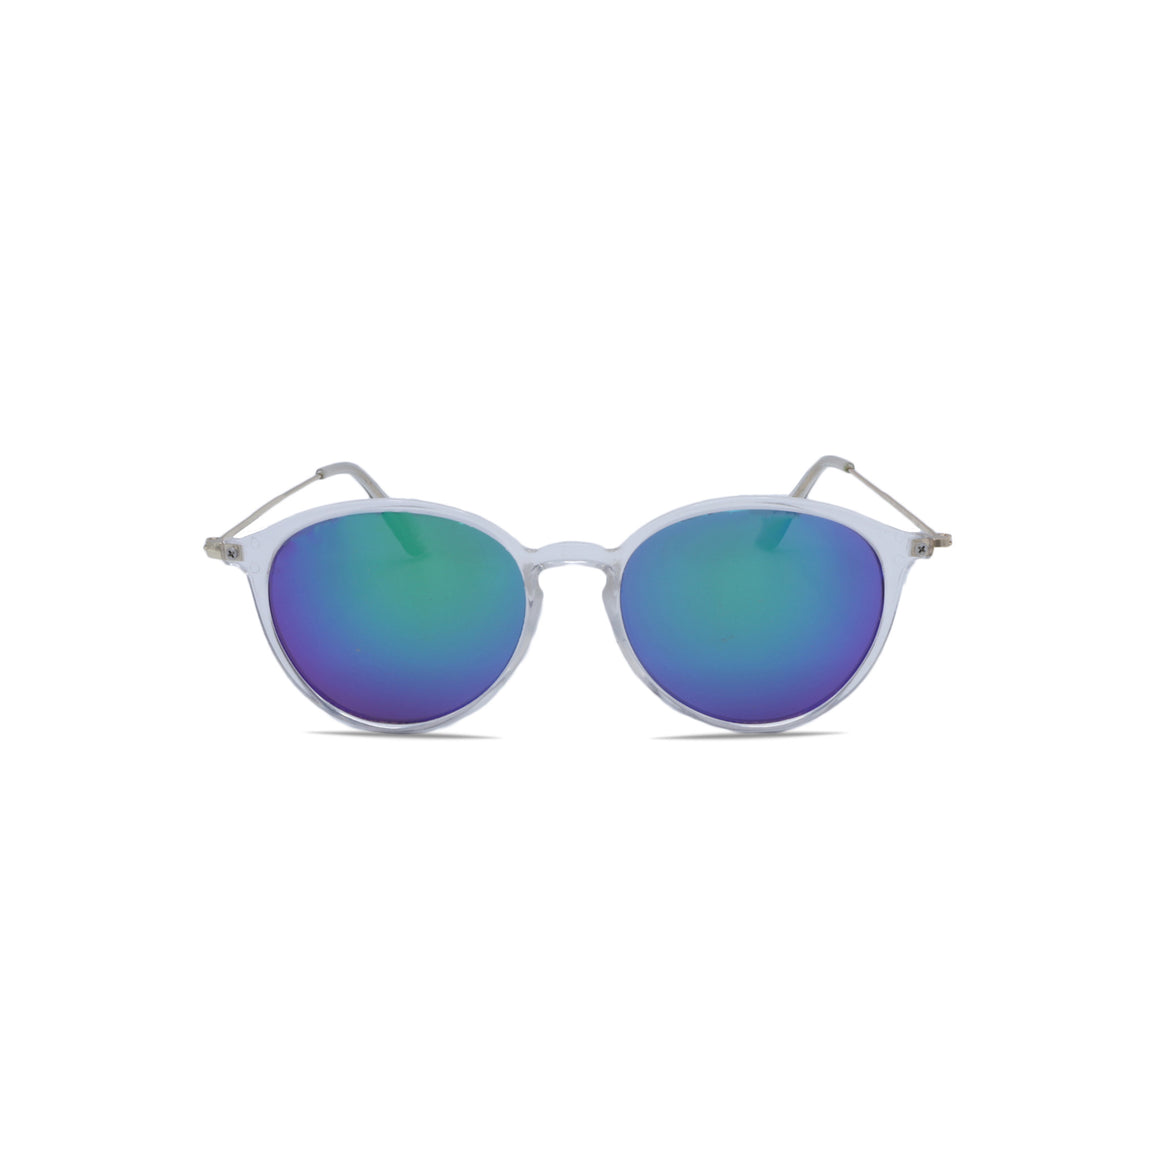 Designer Sunglasses Retro Vintage in Clear Blue Green Color